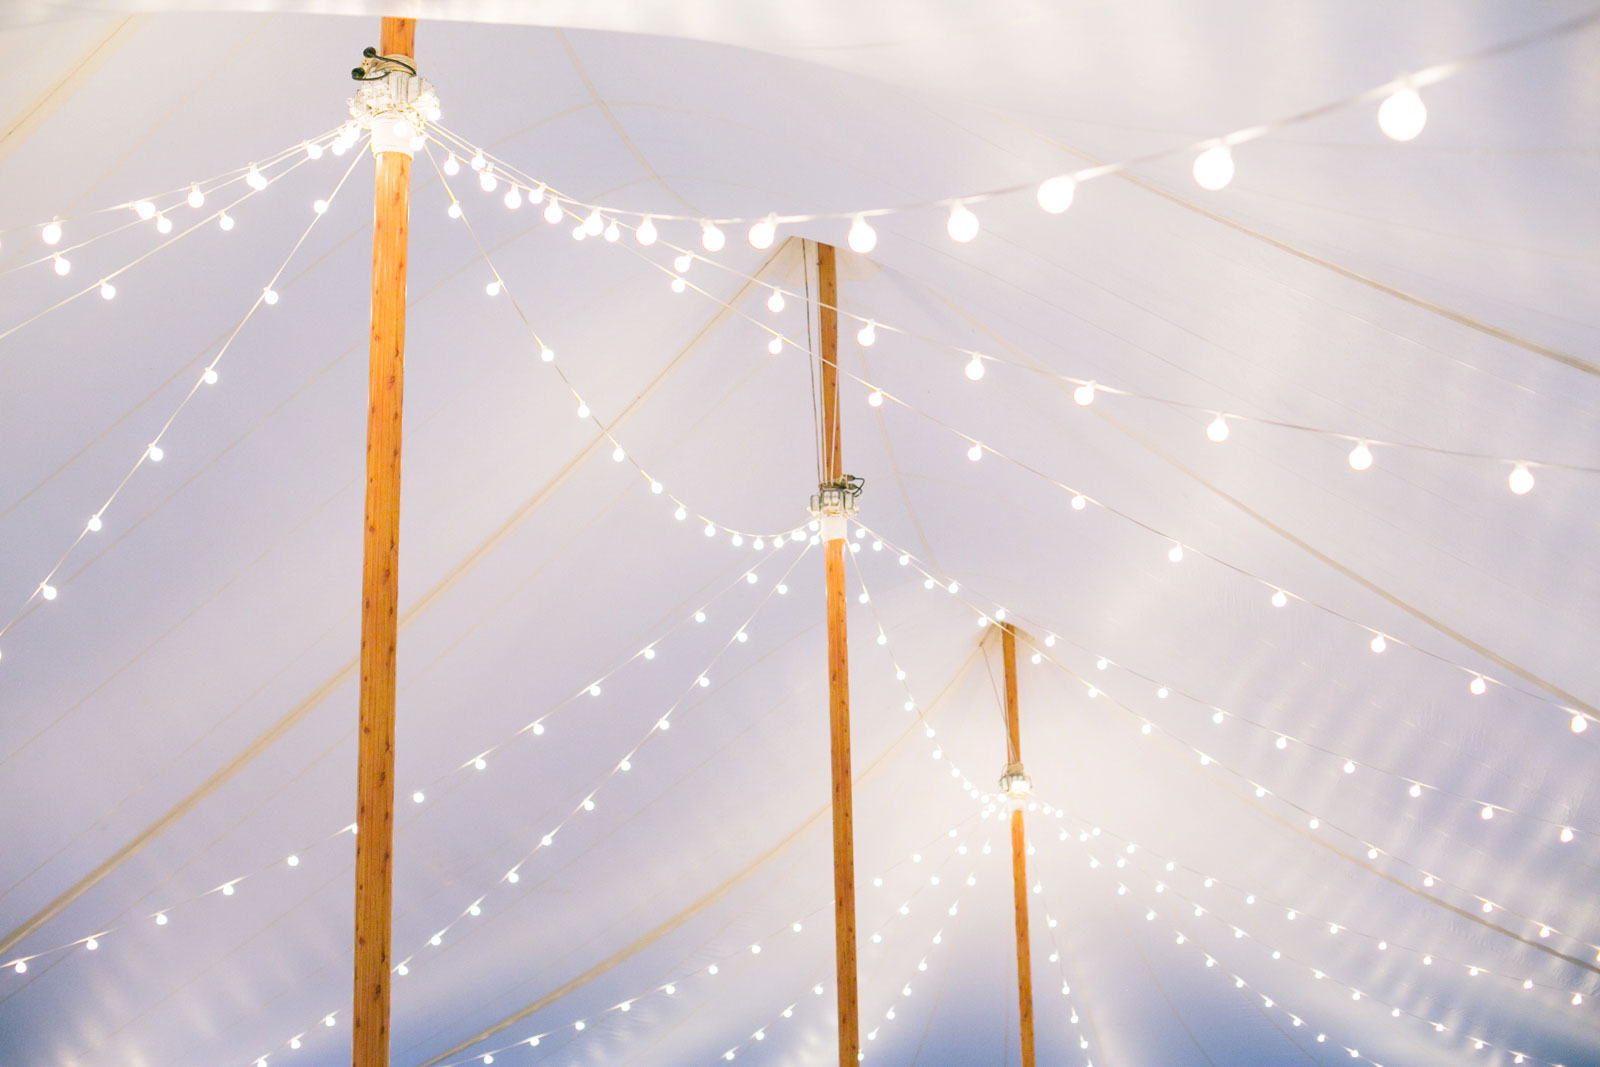 Detail of string lights hanging from poles at tented wedding reception at Bourne Farm on Cape Cod.